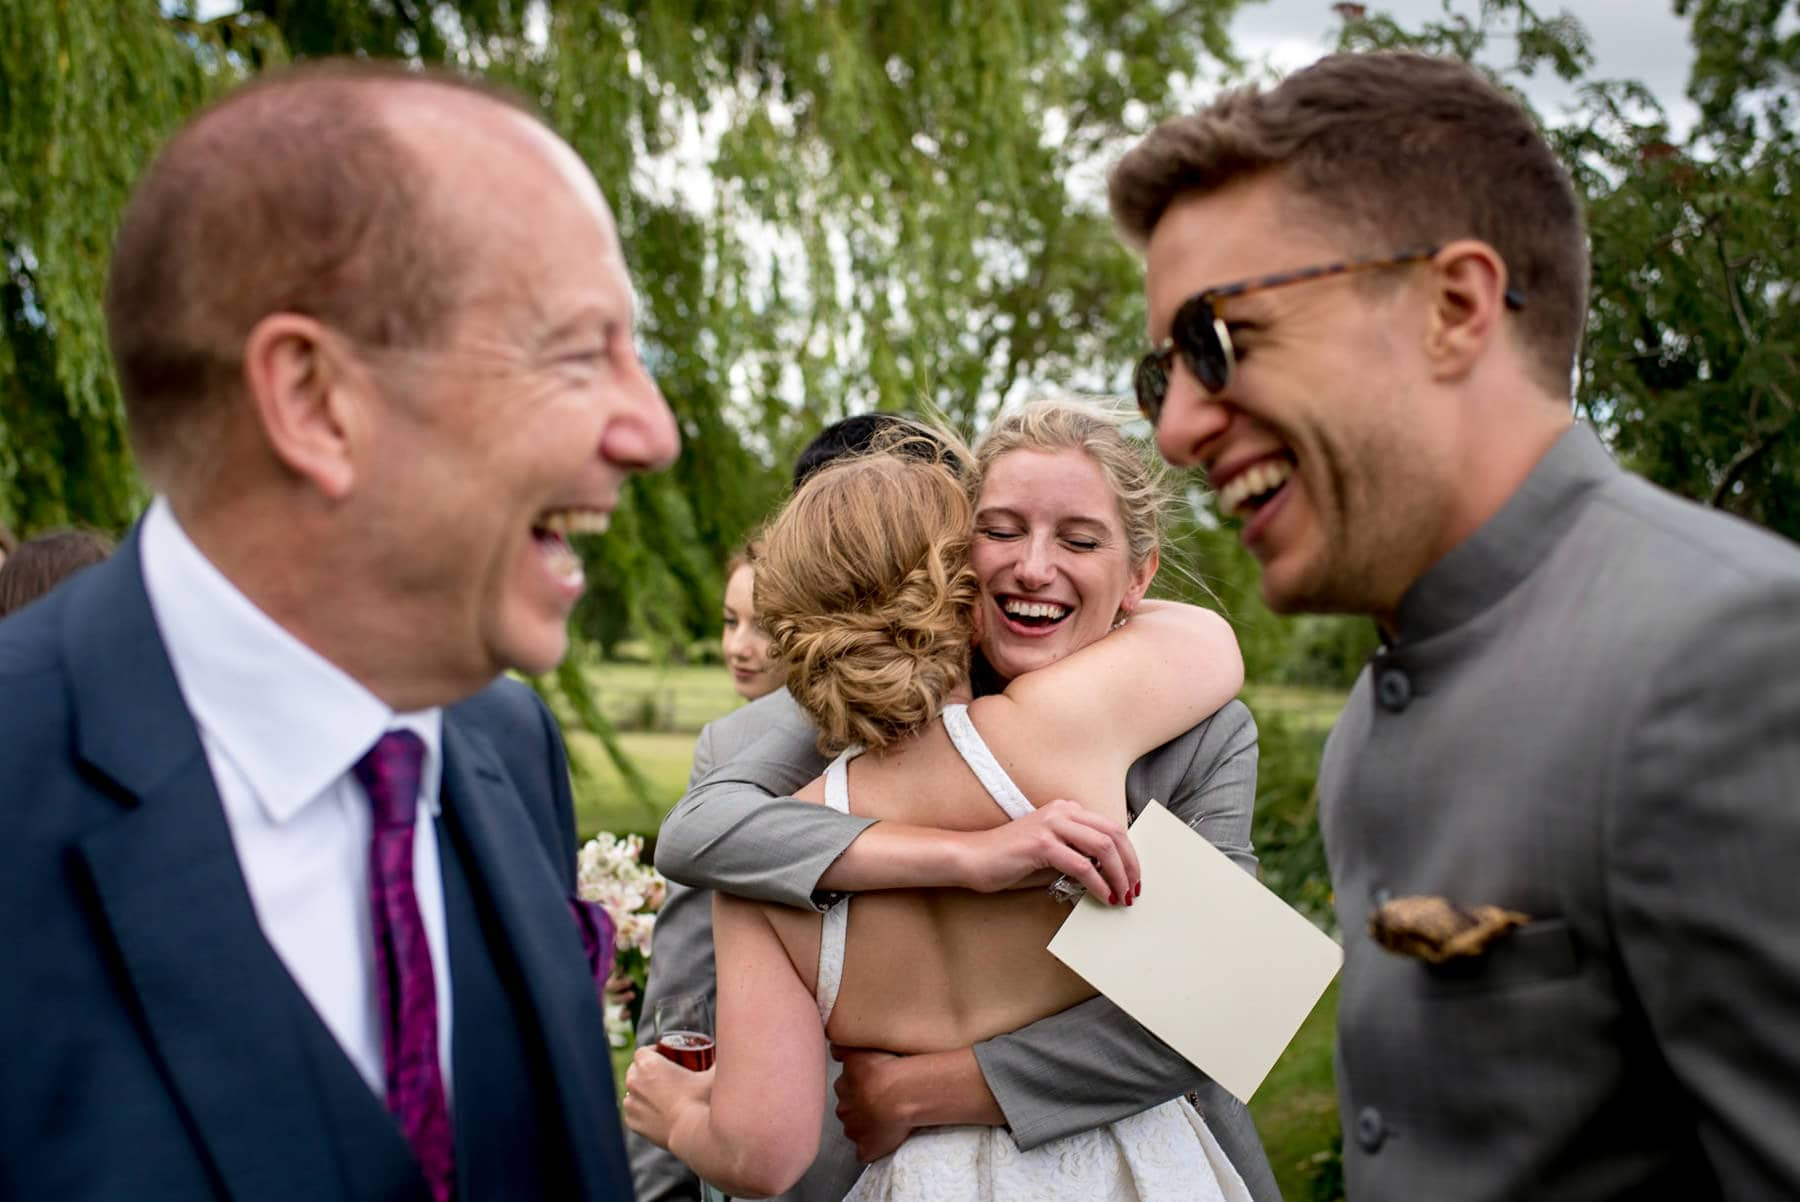 Wedding guests laughing and hugging each other at a garden party wedding in Oxfordshire